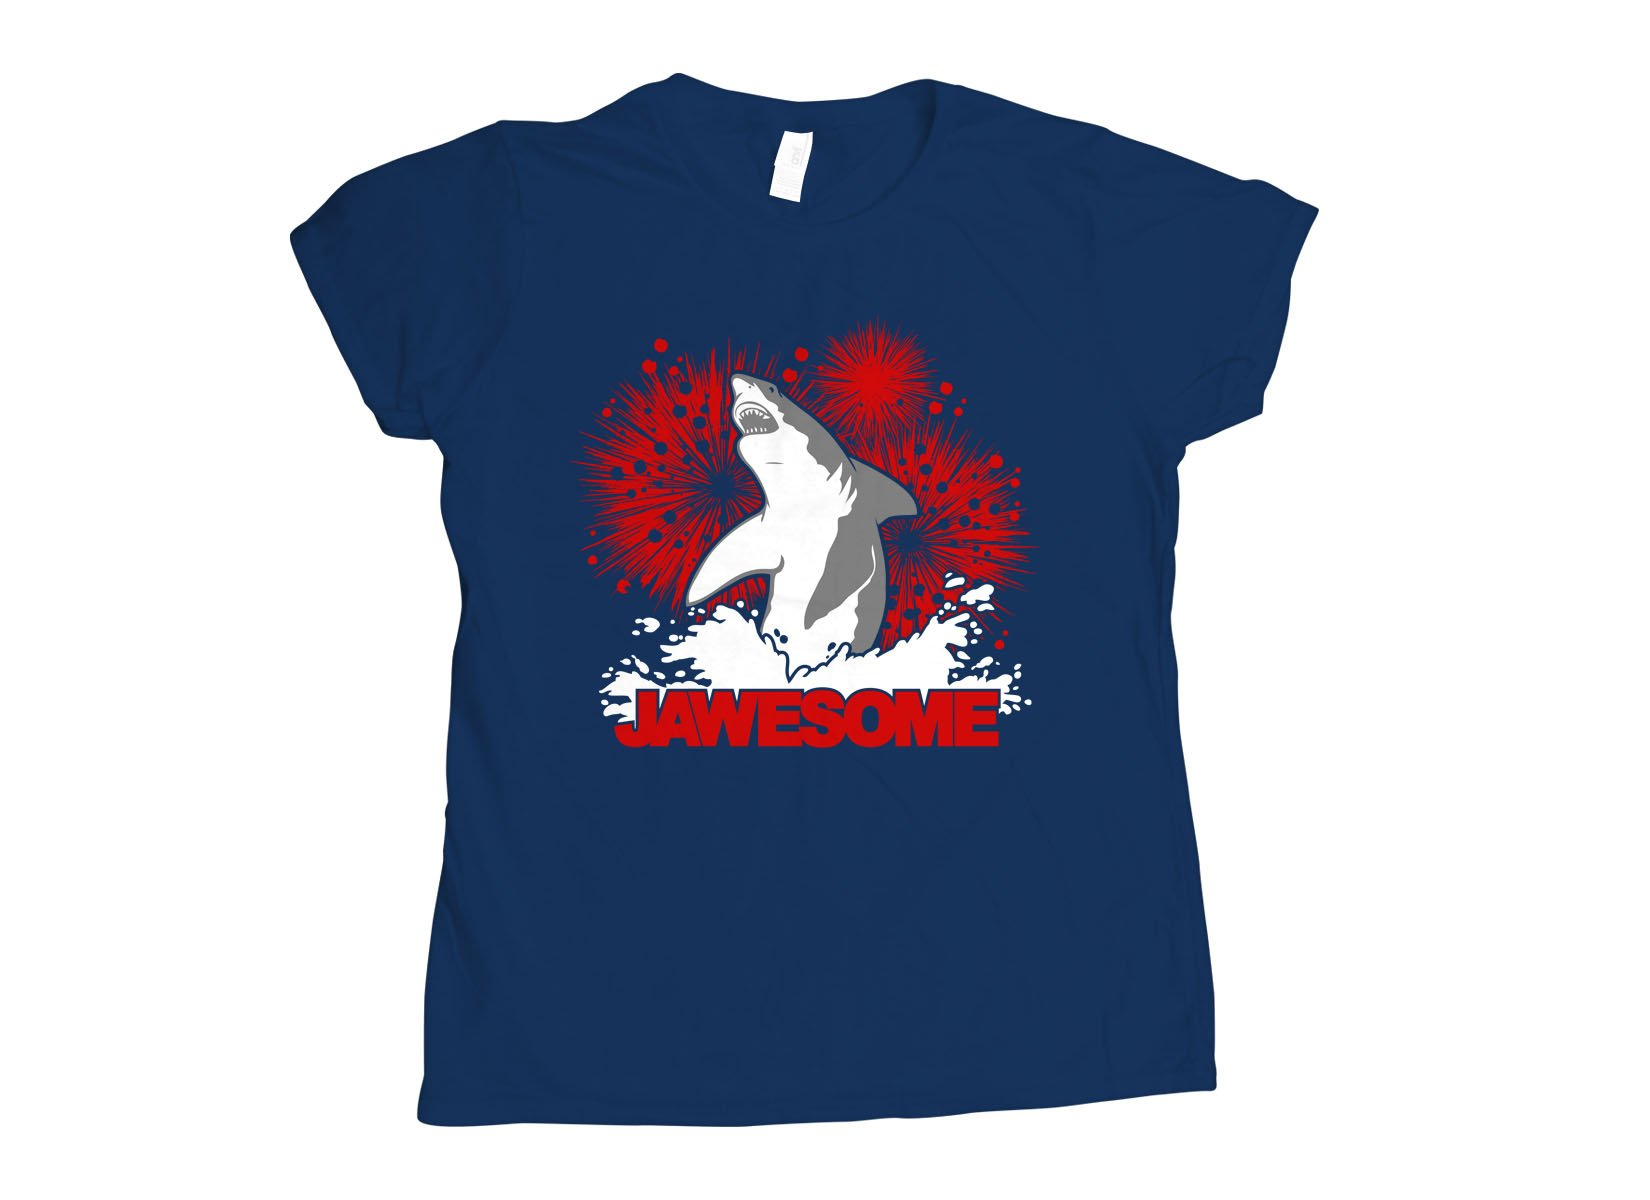 Jawesome! on Womens T-Shirt